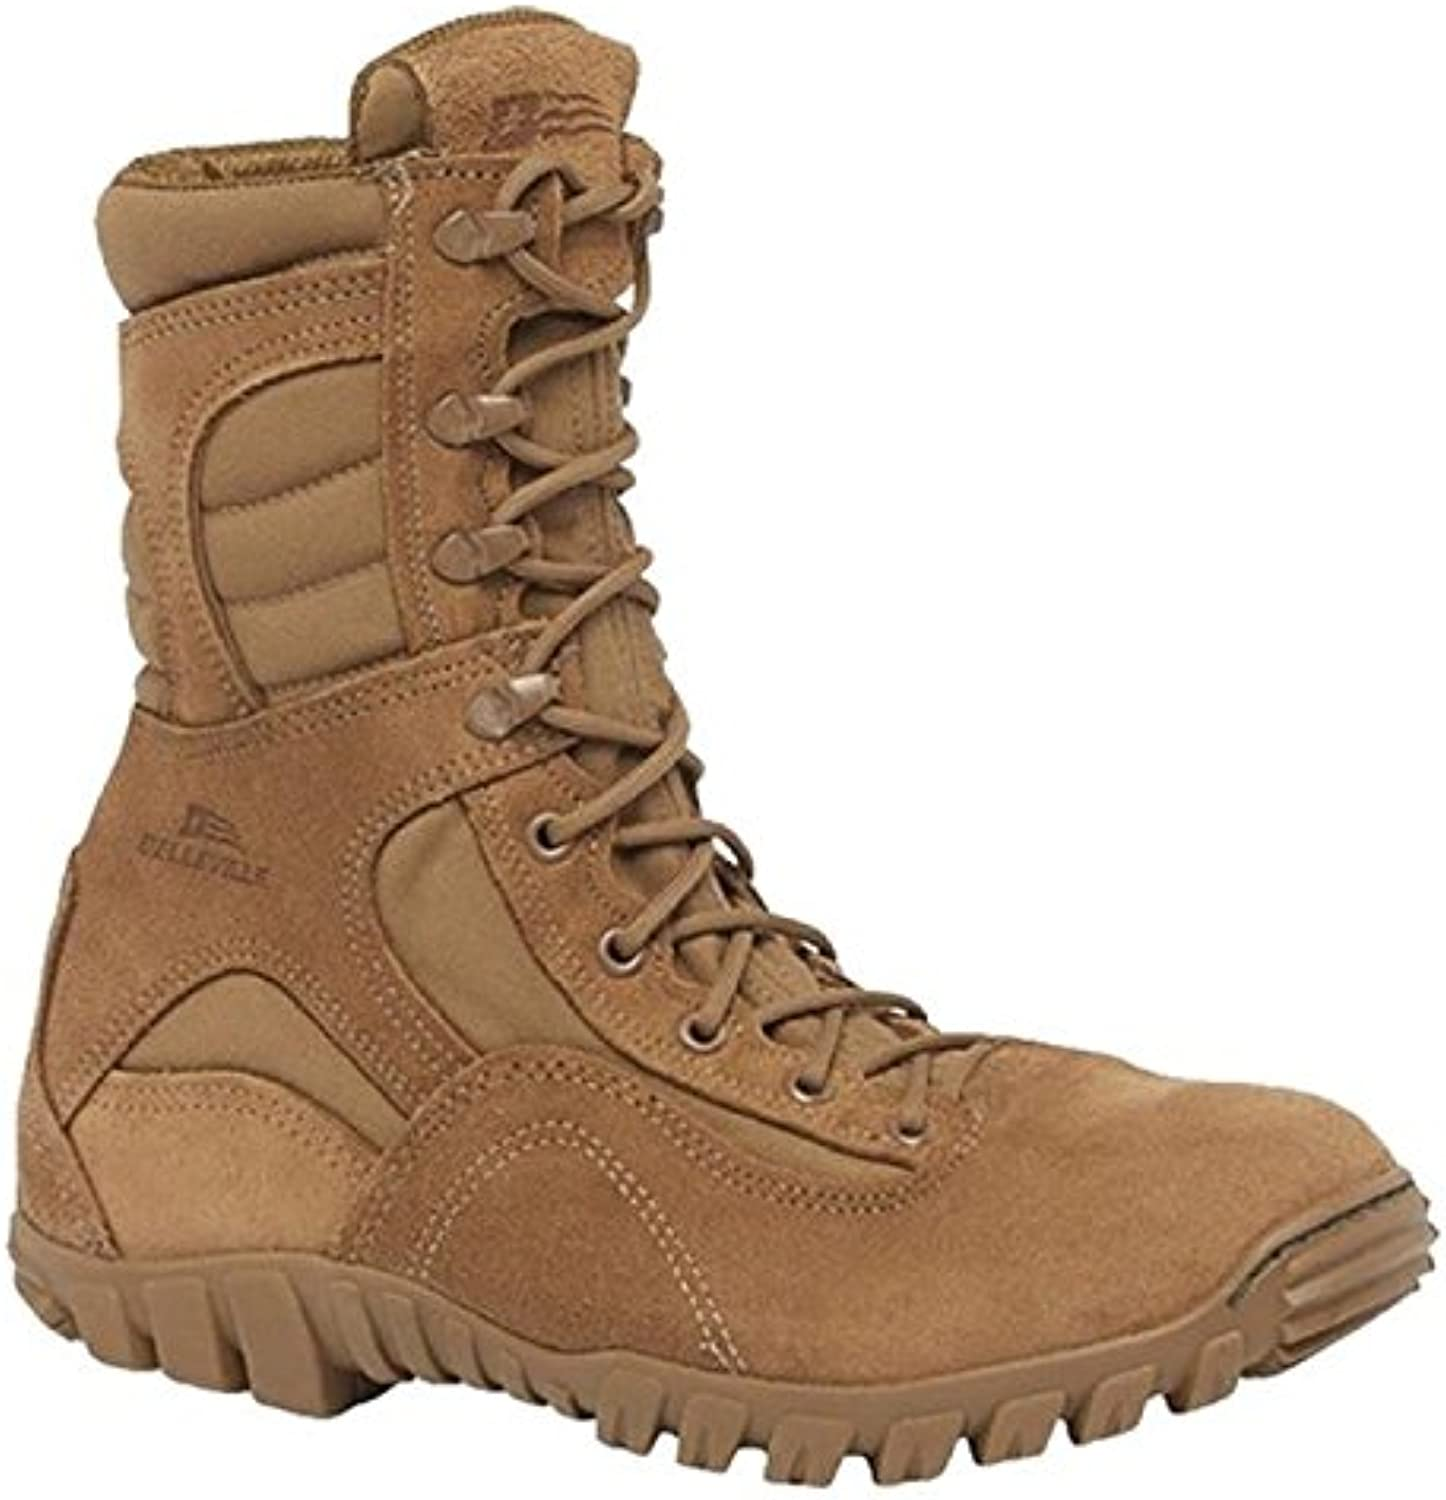 Belleville Sabre 533 Hot weather Boot – Coyote - 533, Coyote